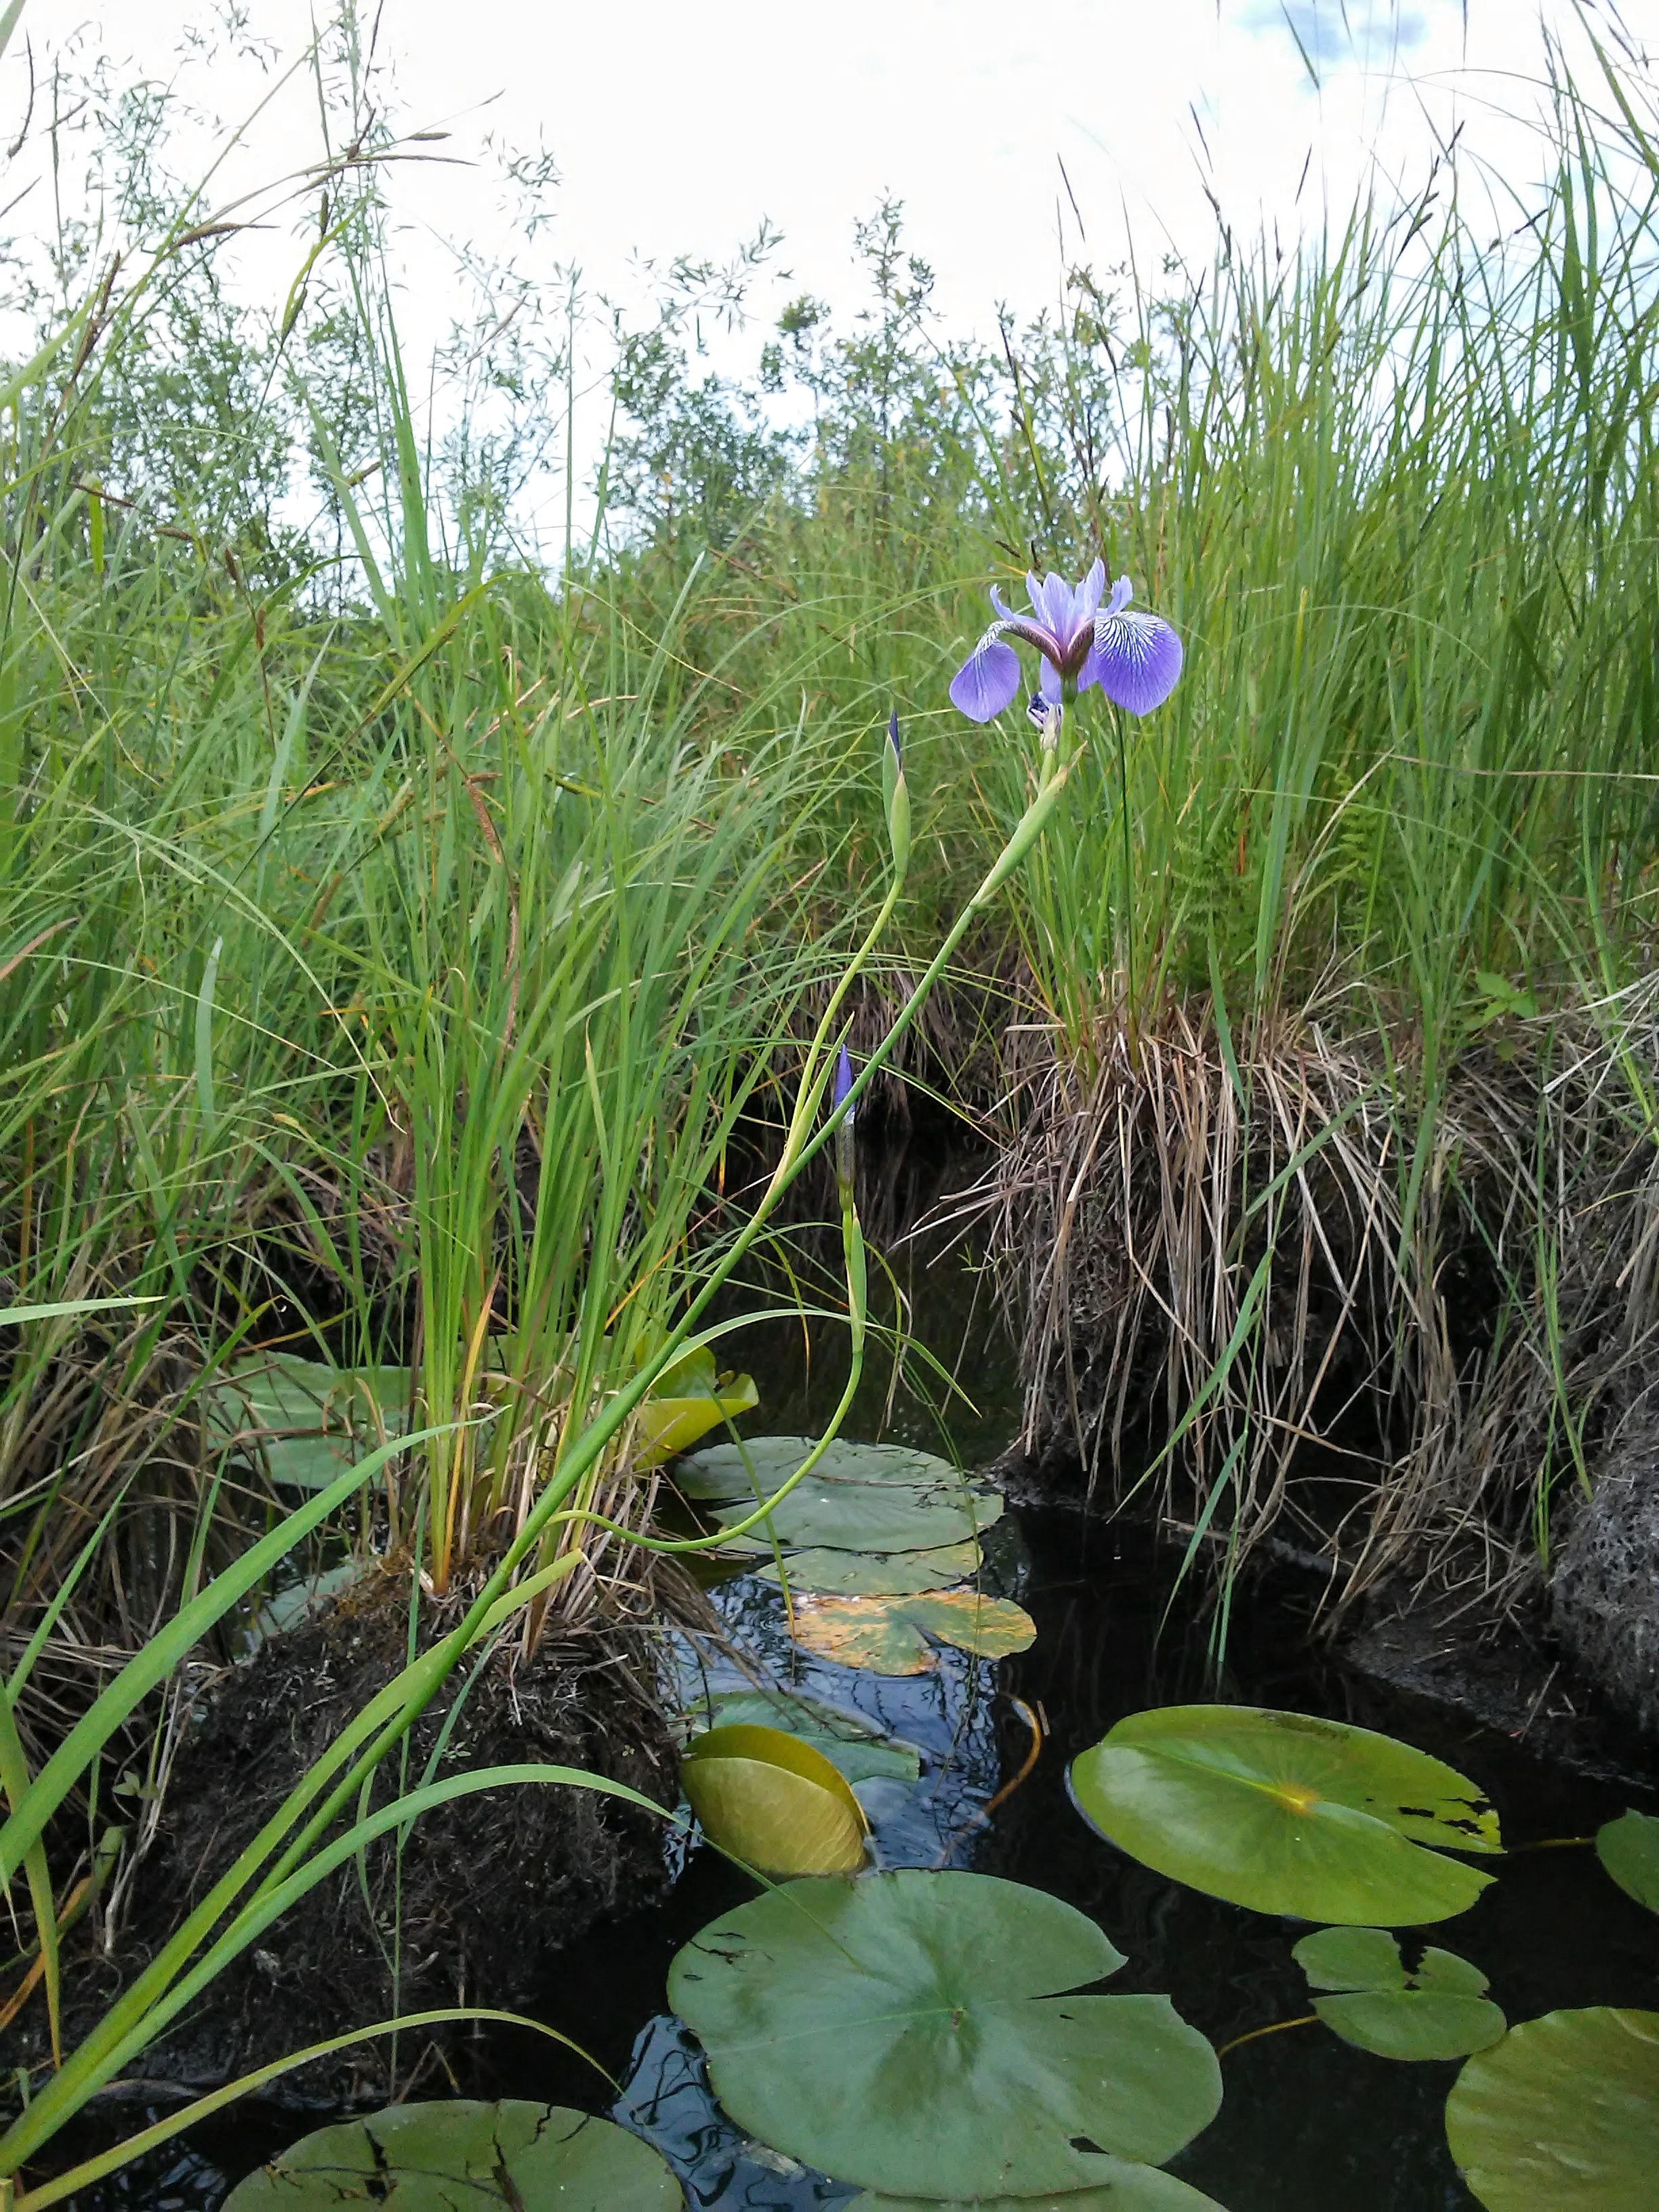 Lily pads and a purple iris